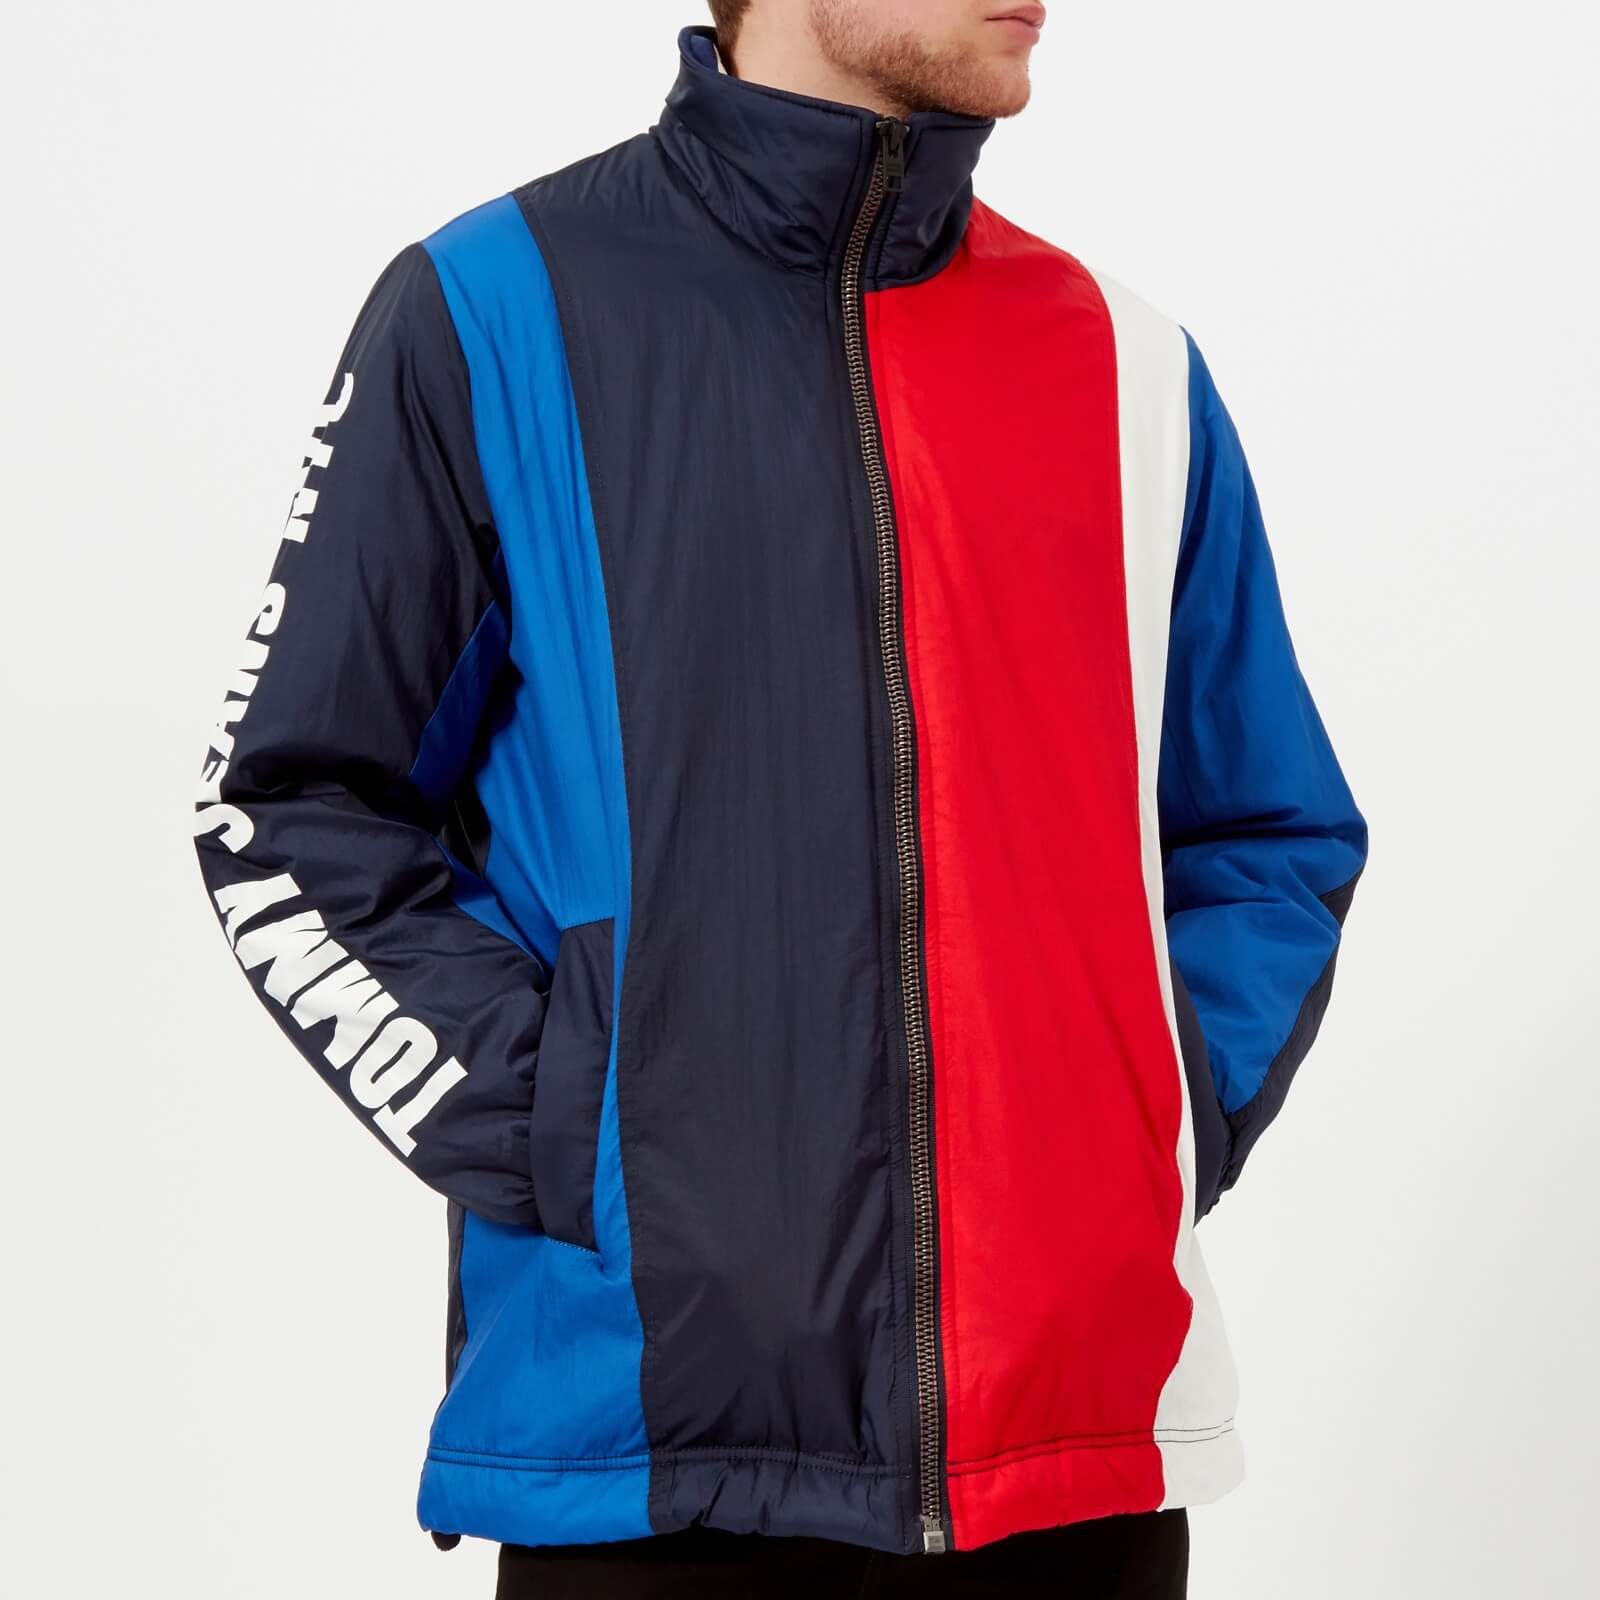 69fcc2b896 Tommy Jeans Men s Oversize Colorblock Striped Jacket - Black Iris Multi -  Free UK Delivery over £50